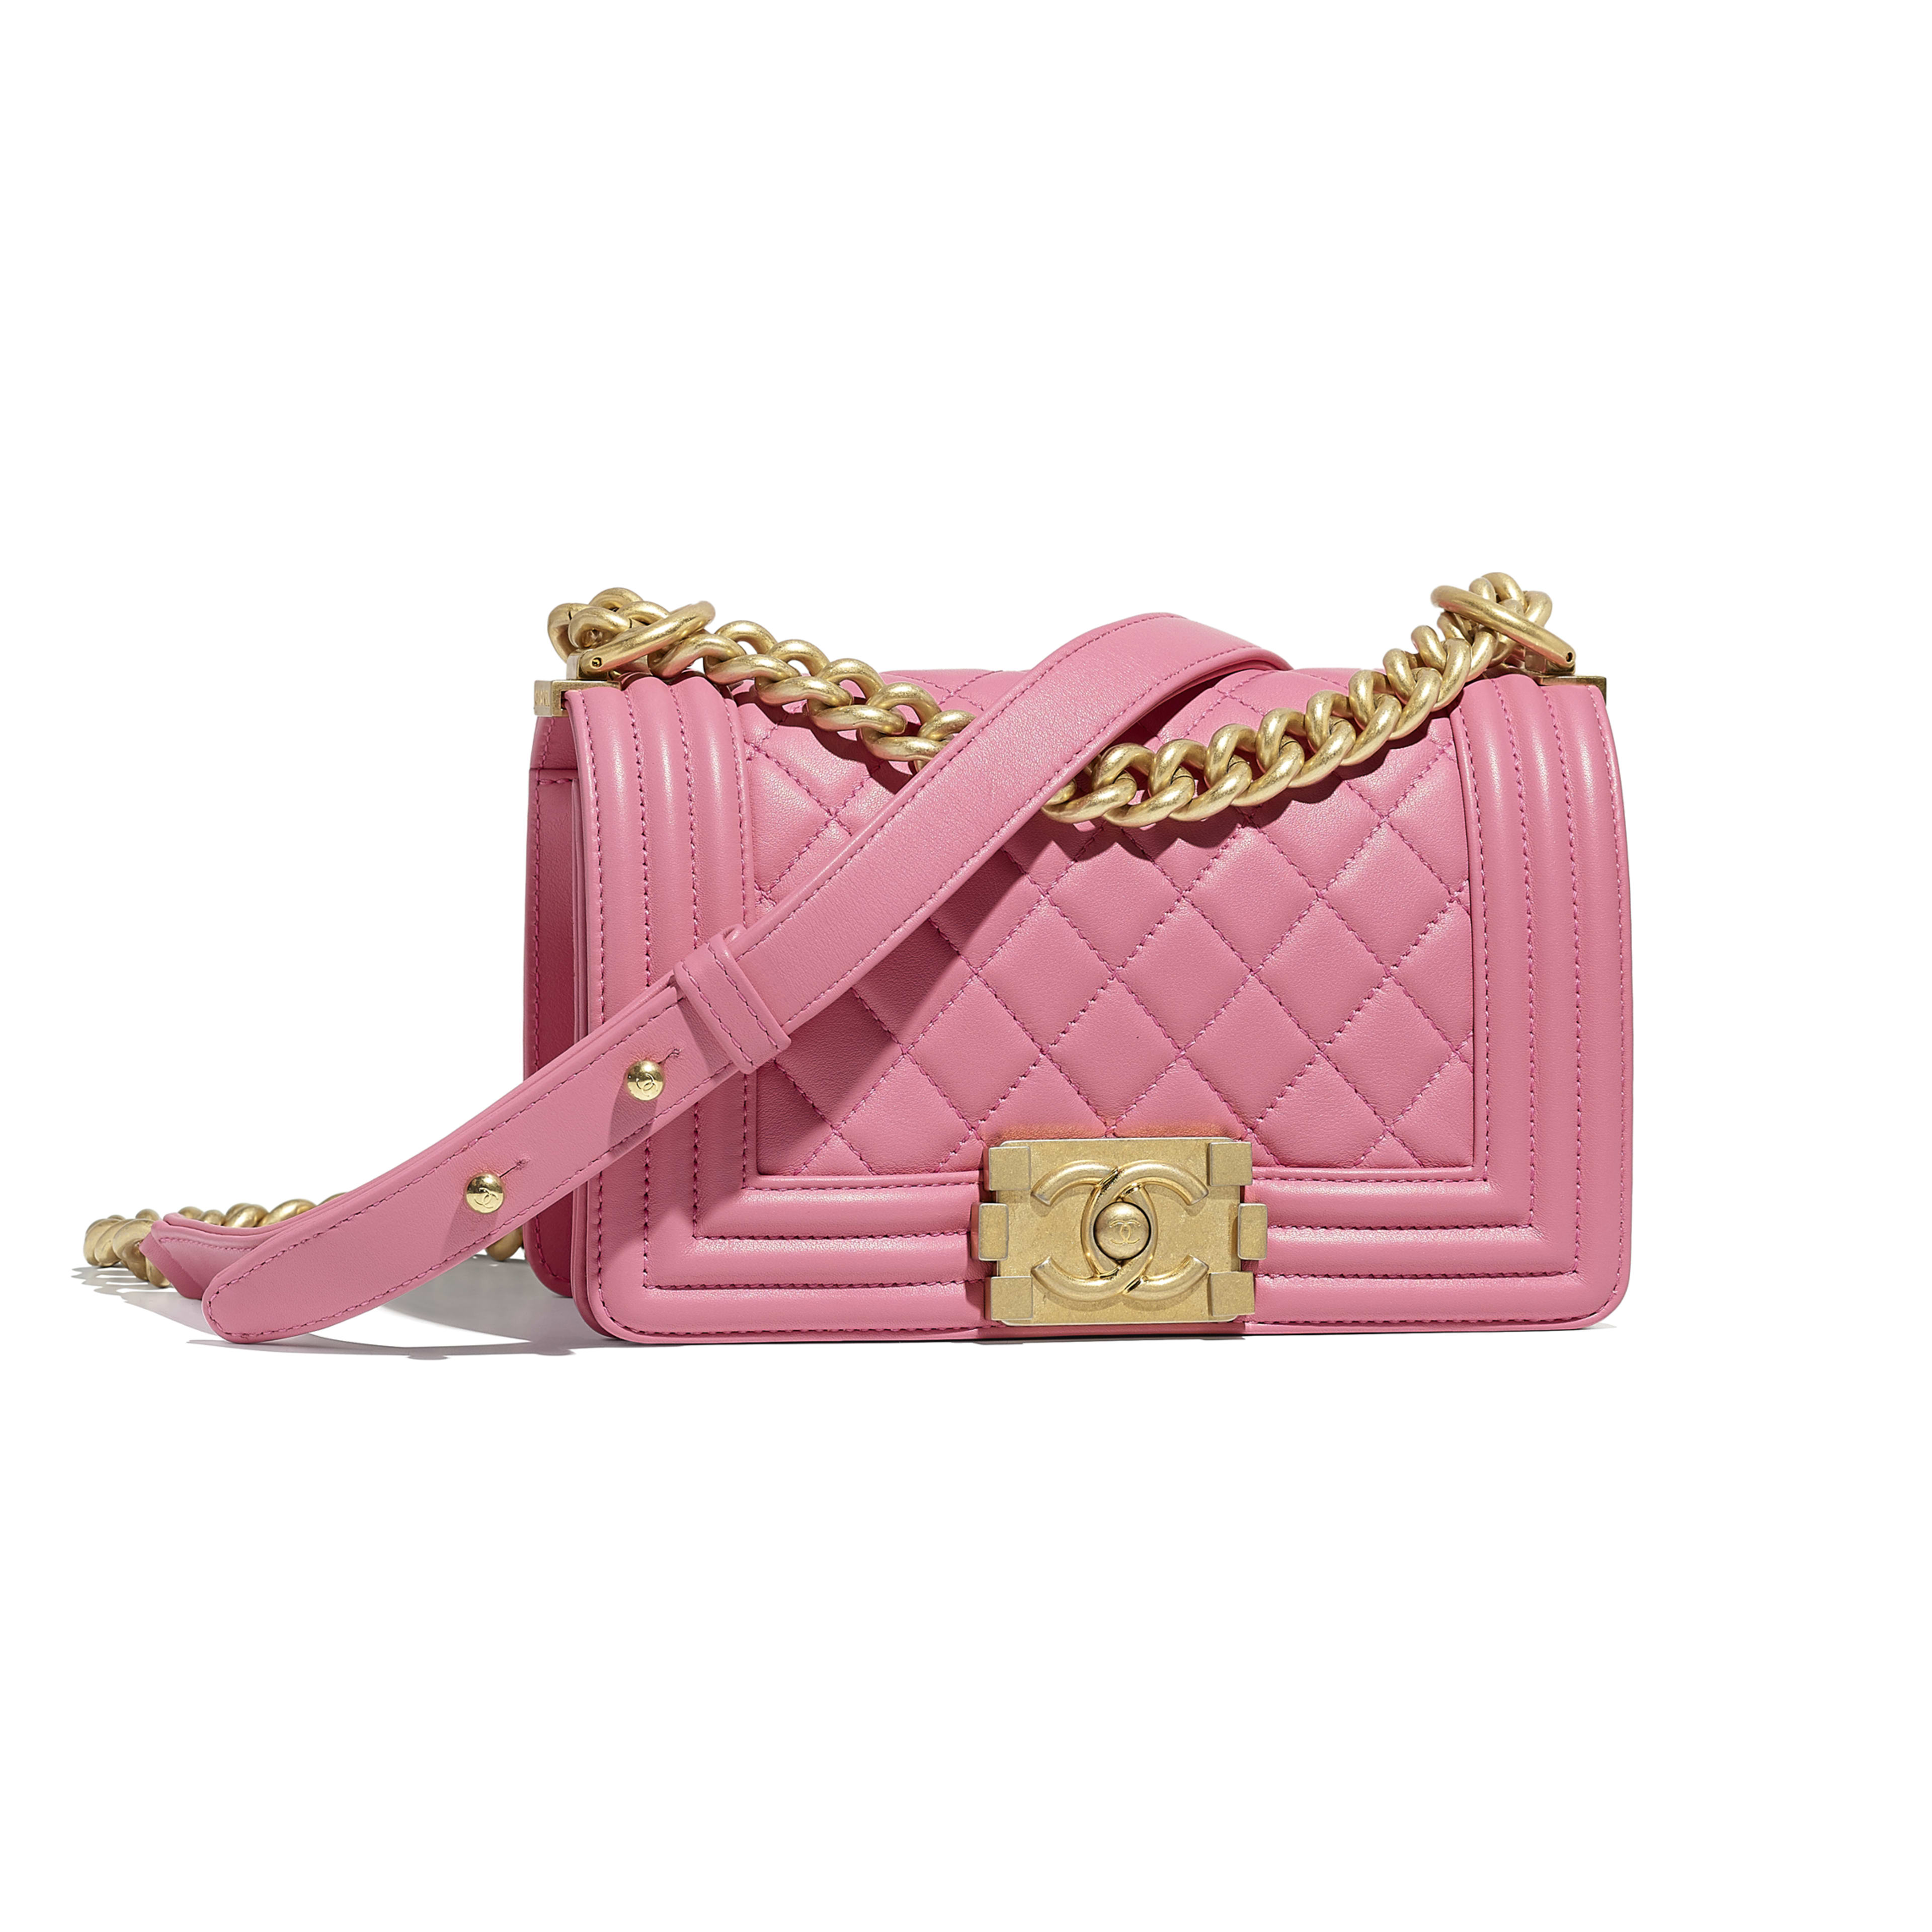 Small BOY CHANEL Handbag - Pink - Calfskin & Gold-Tone Metal - Default view - see full sized version